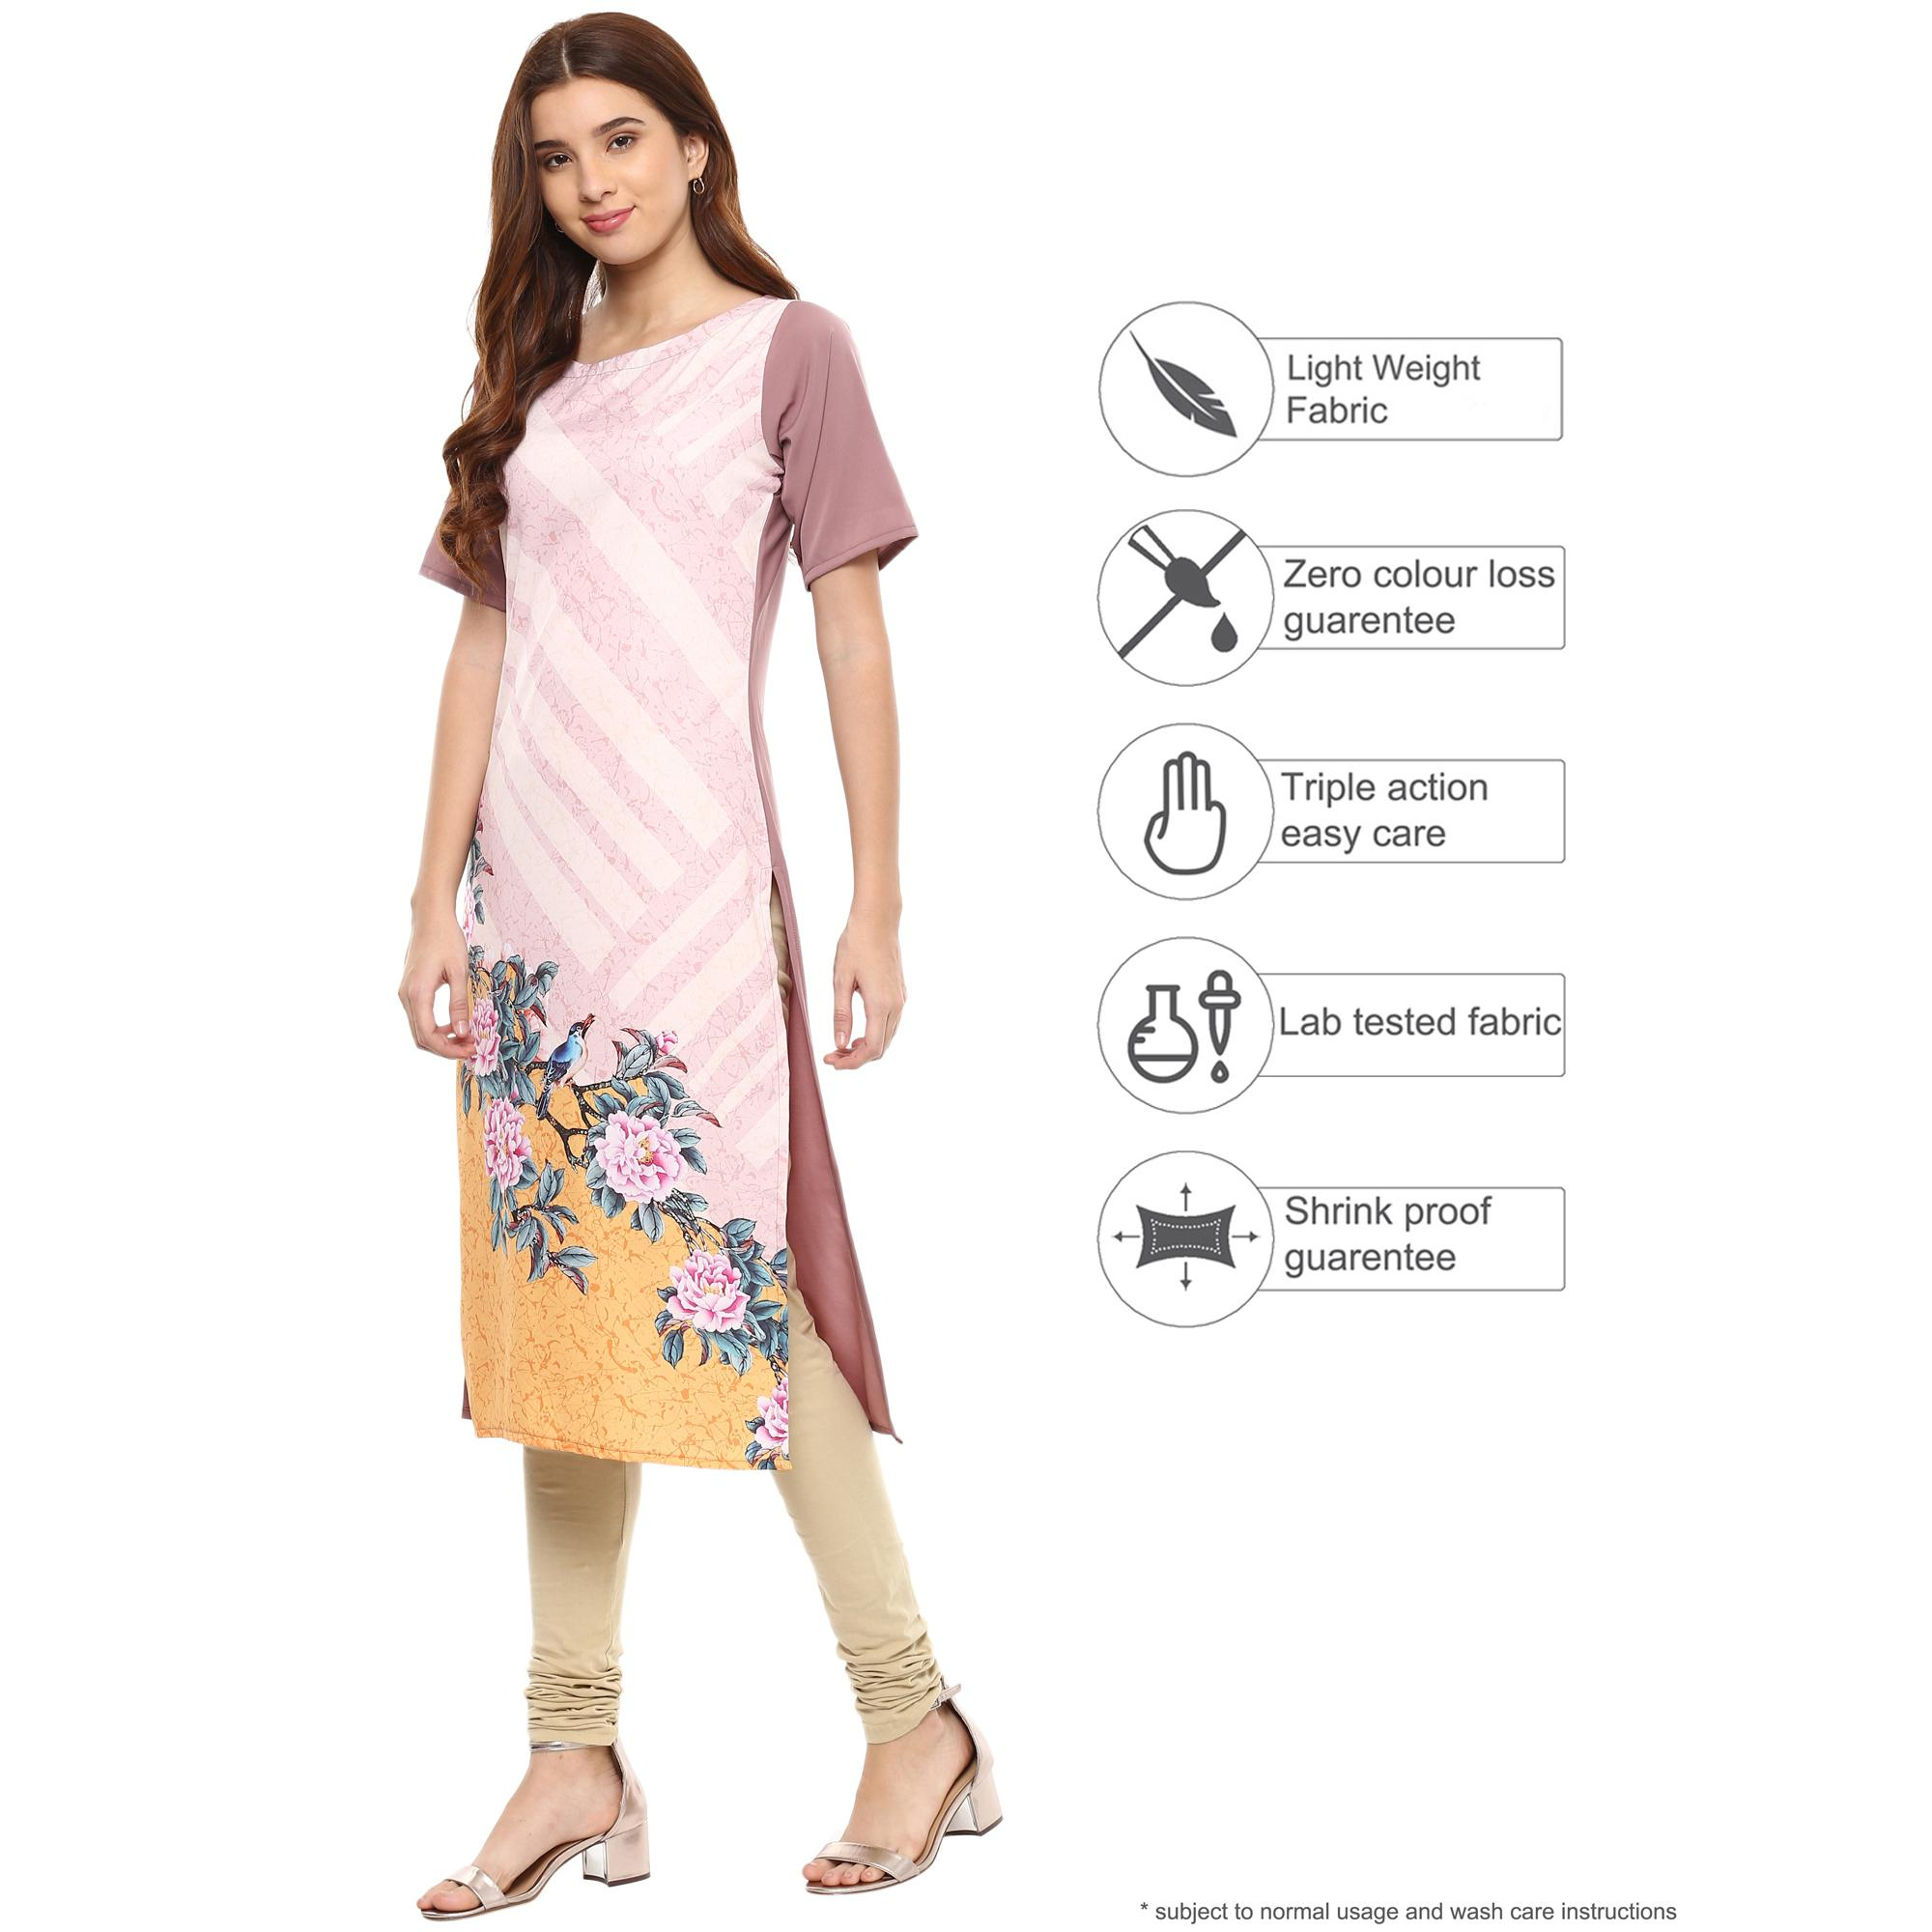 Ahalyaa - Mauve Colored Casual Digital Printed Crepe-Polyester Kurti